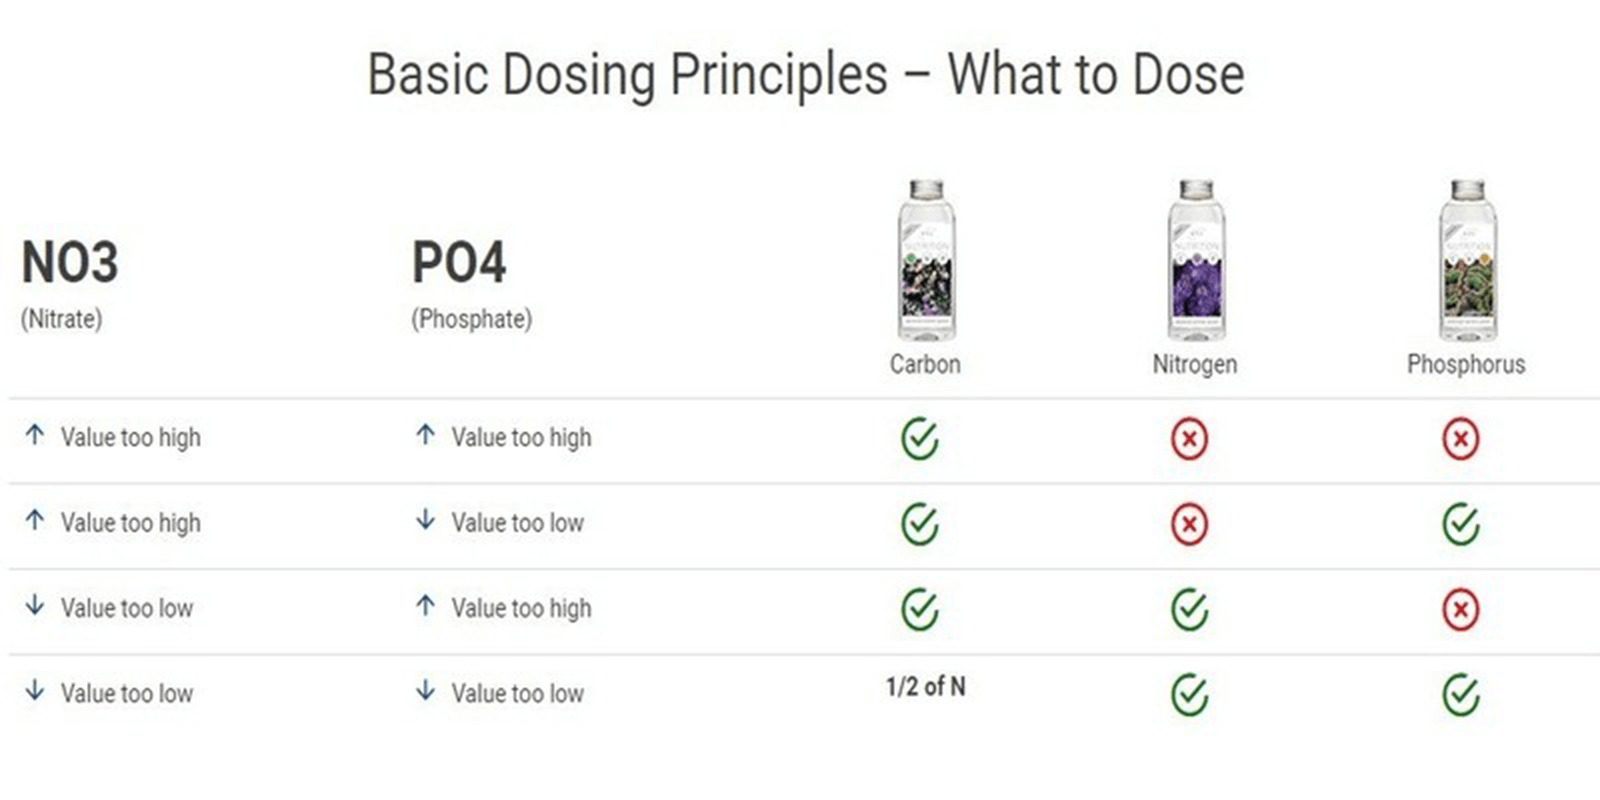 Basic Dosing Principles: What to Dose